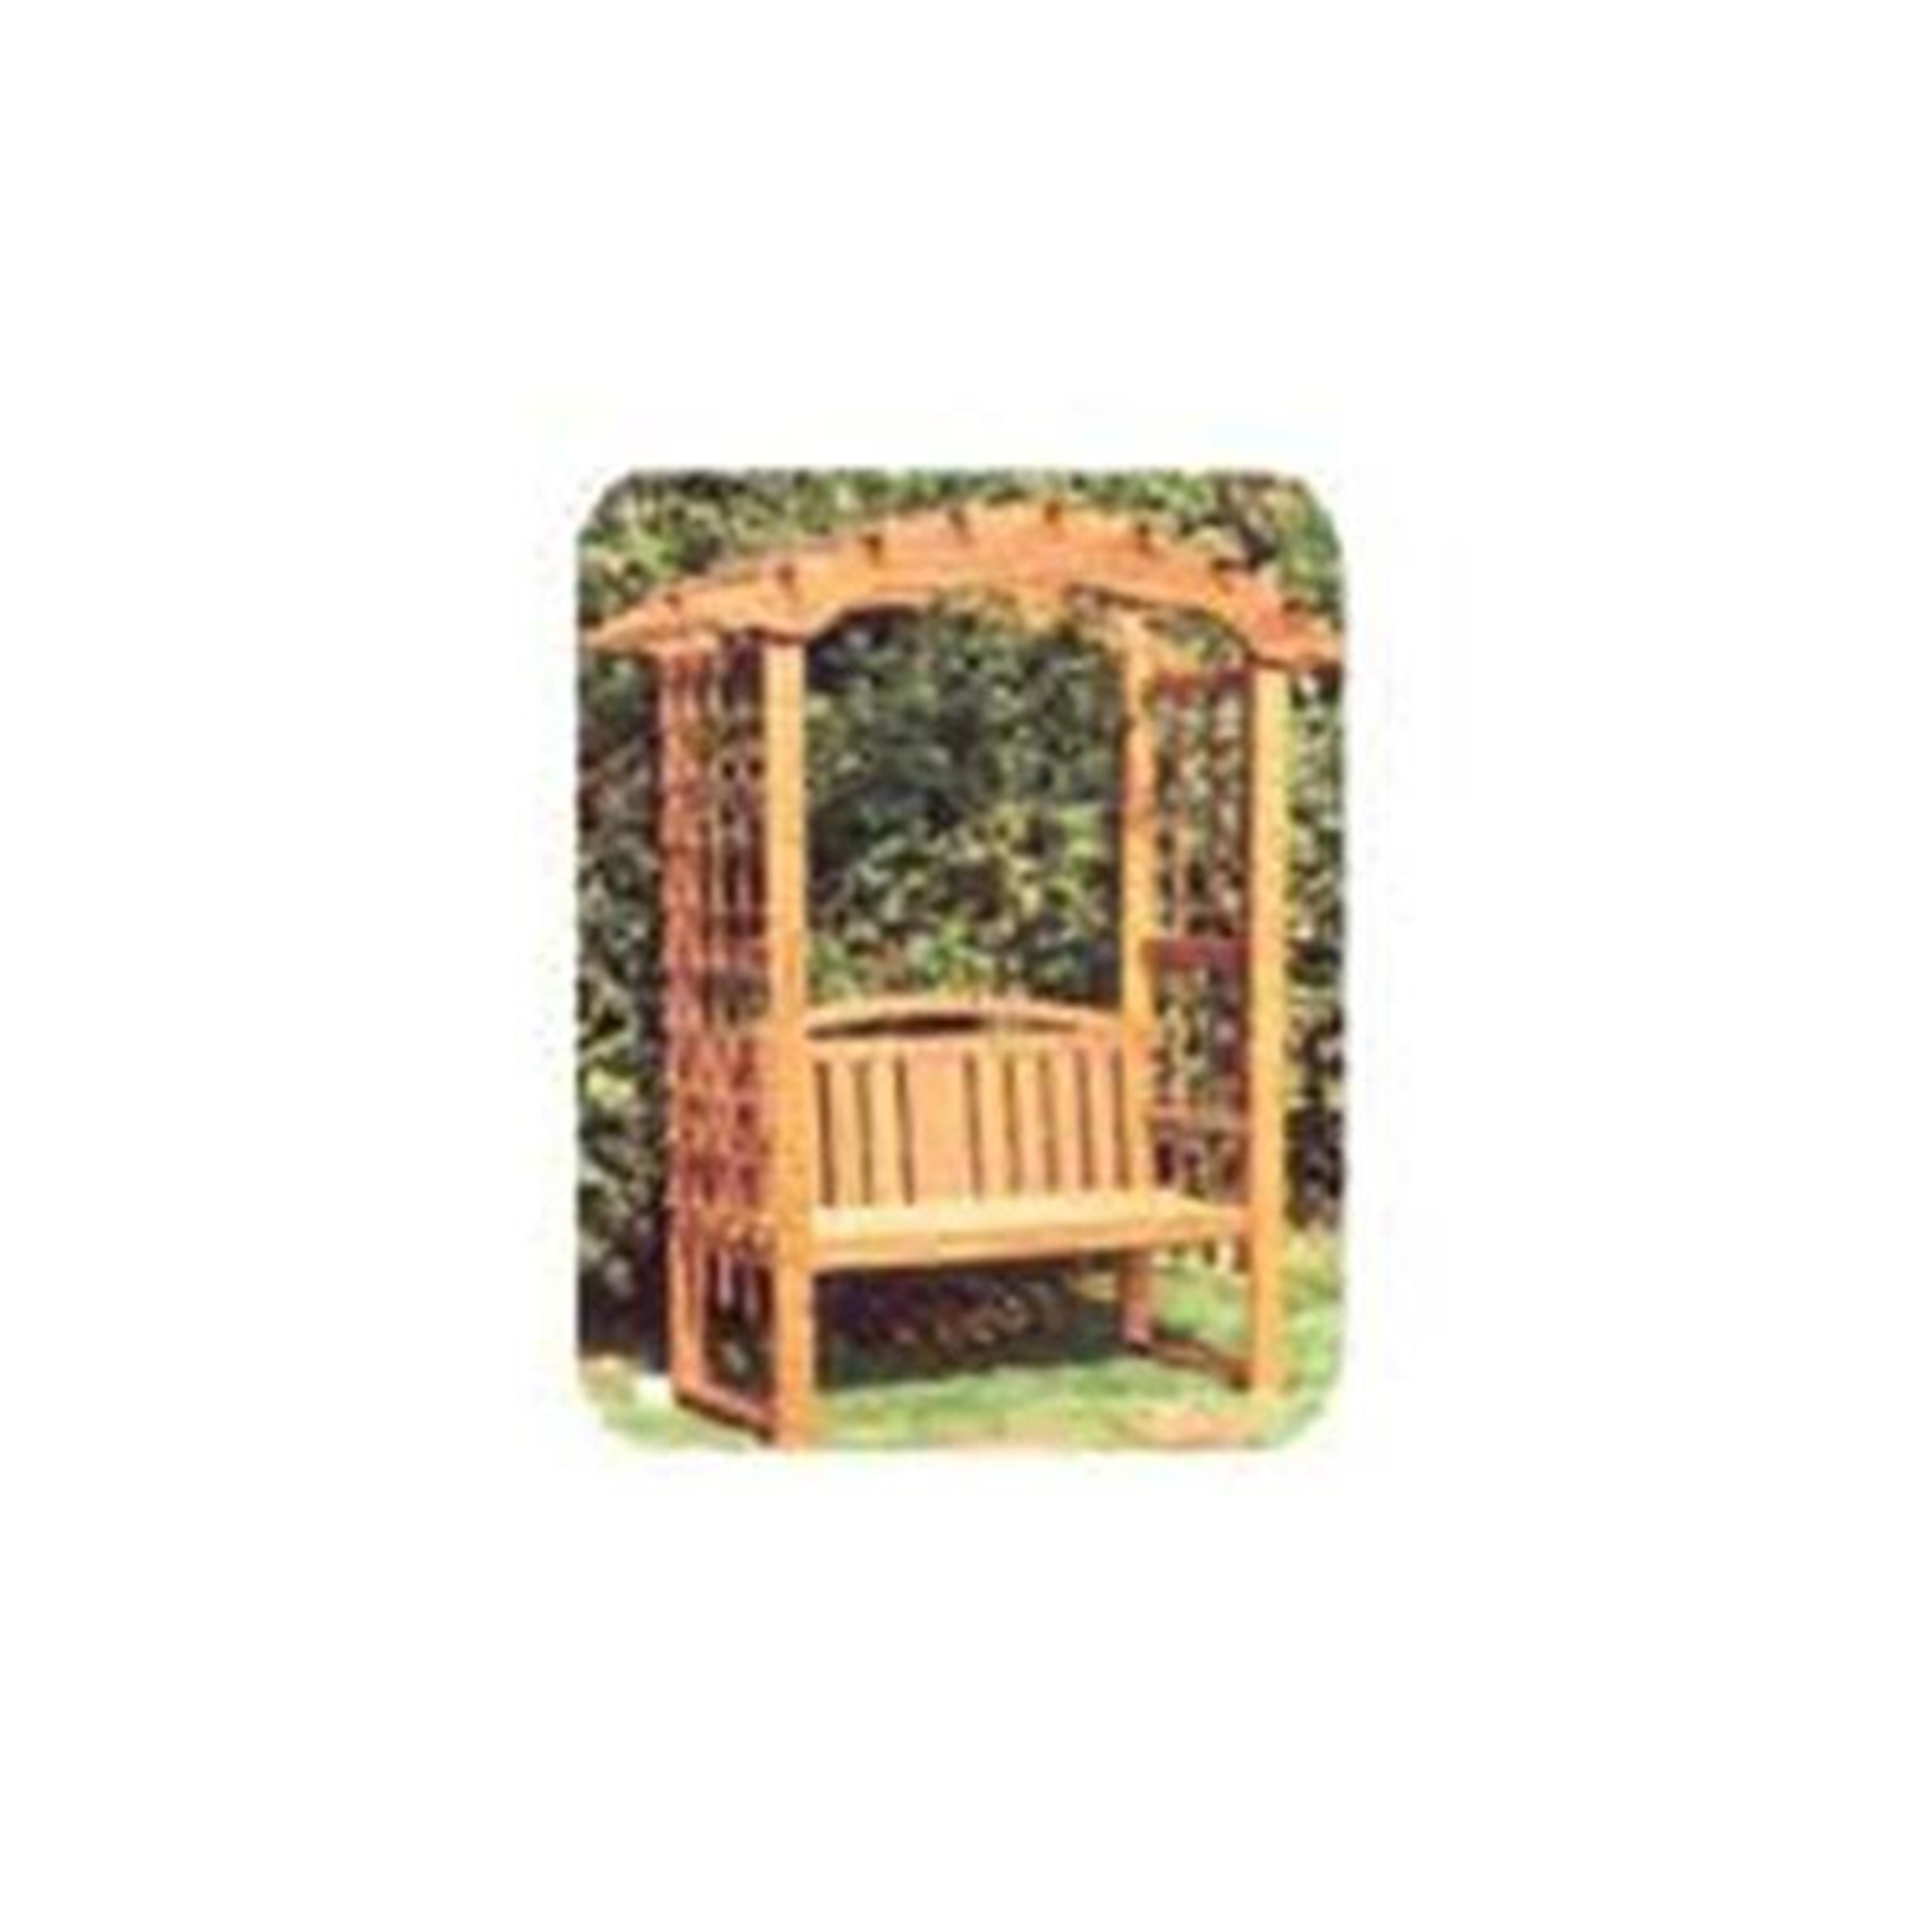 Woodworking Project Paper Plan to Build Arbor with Bench